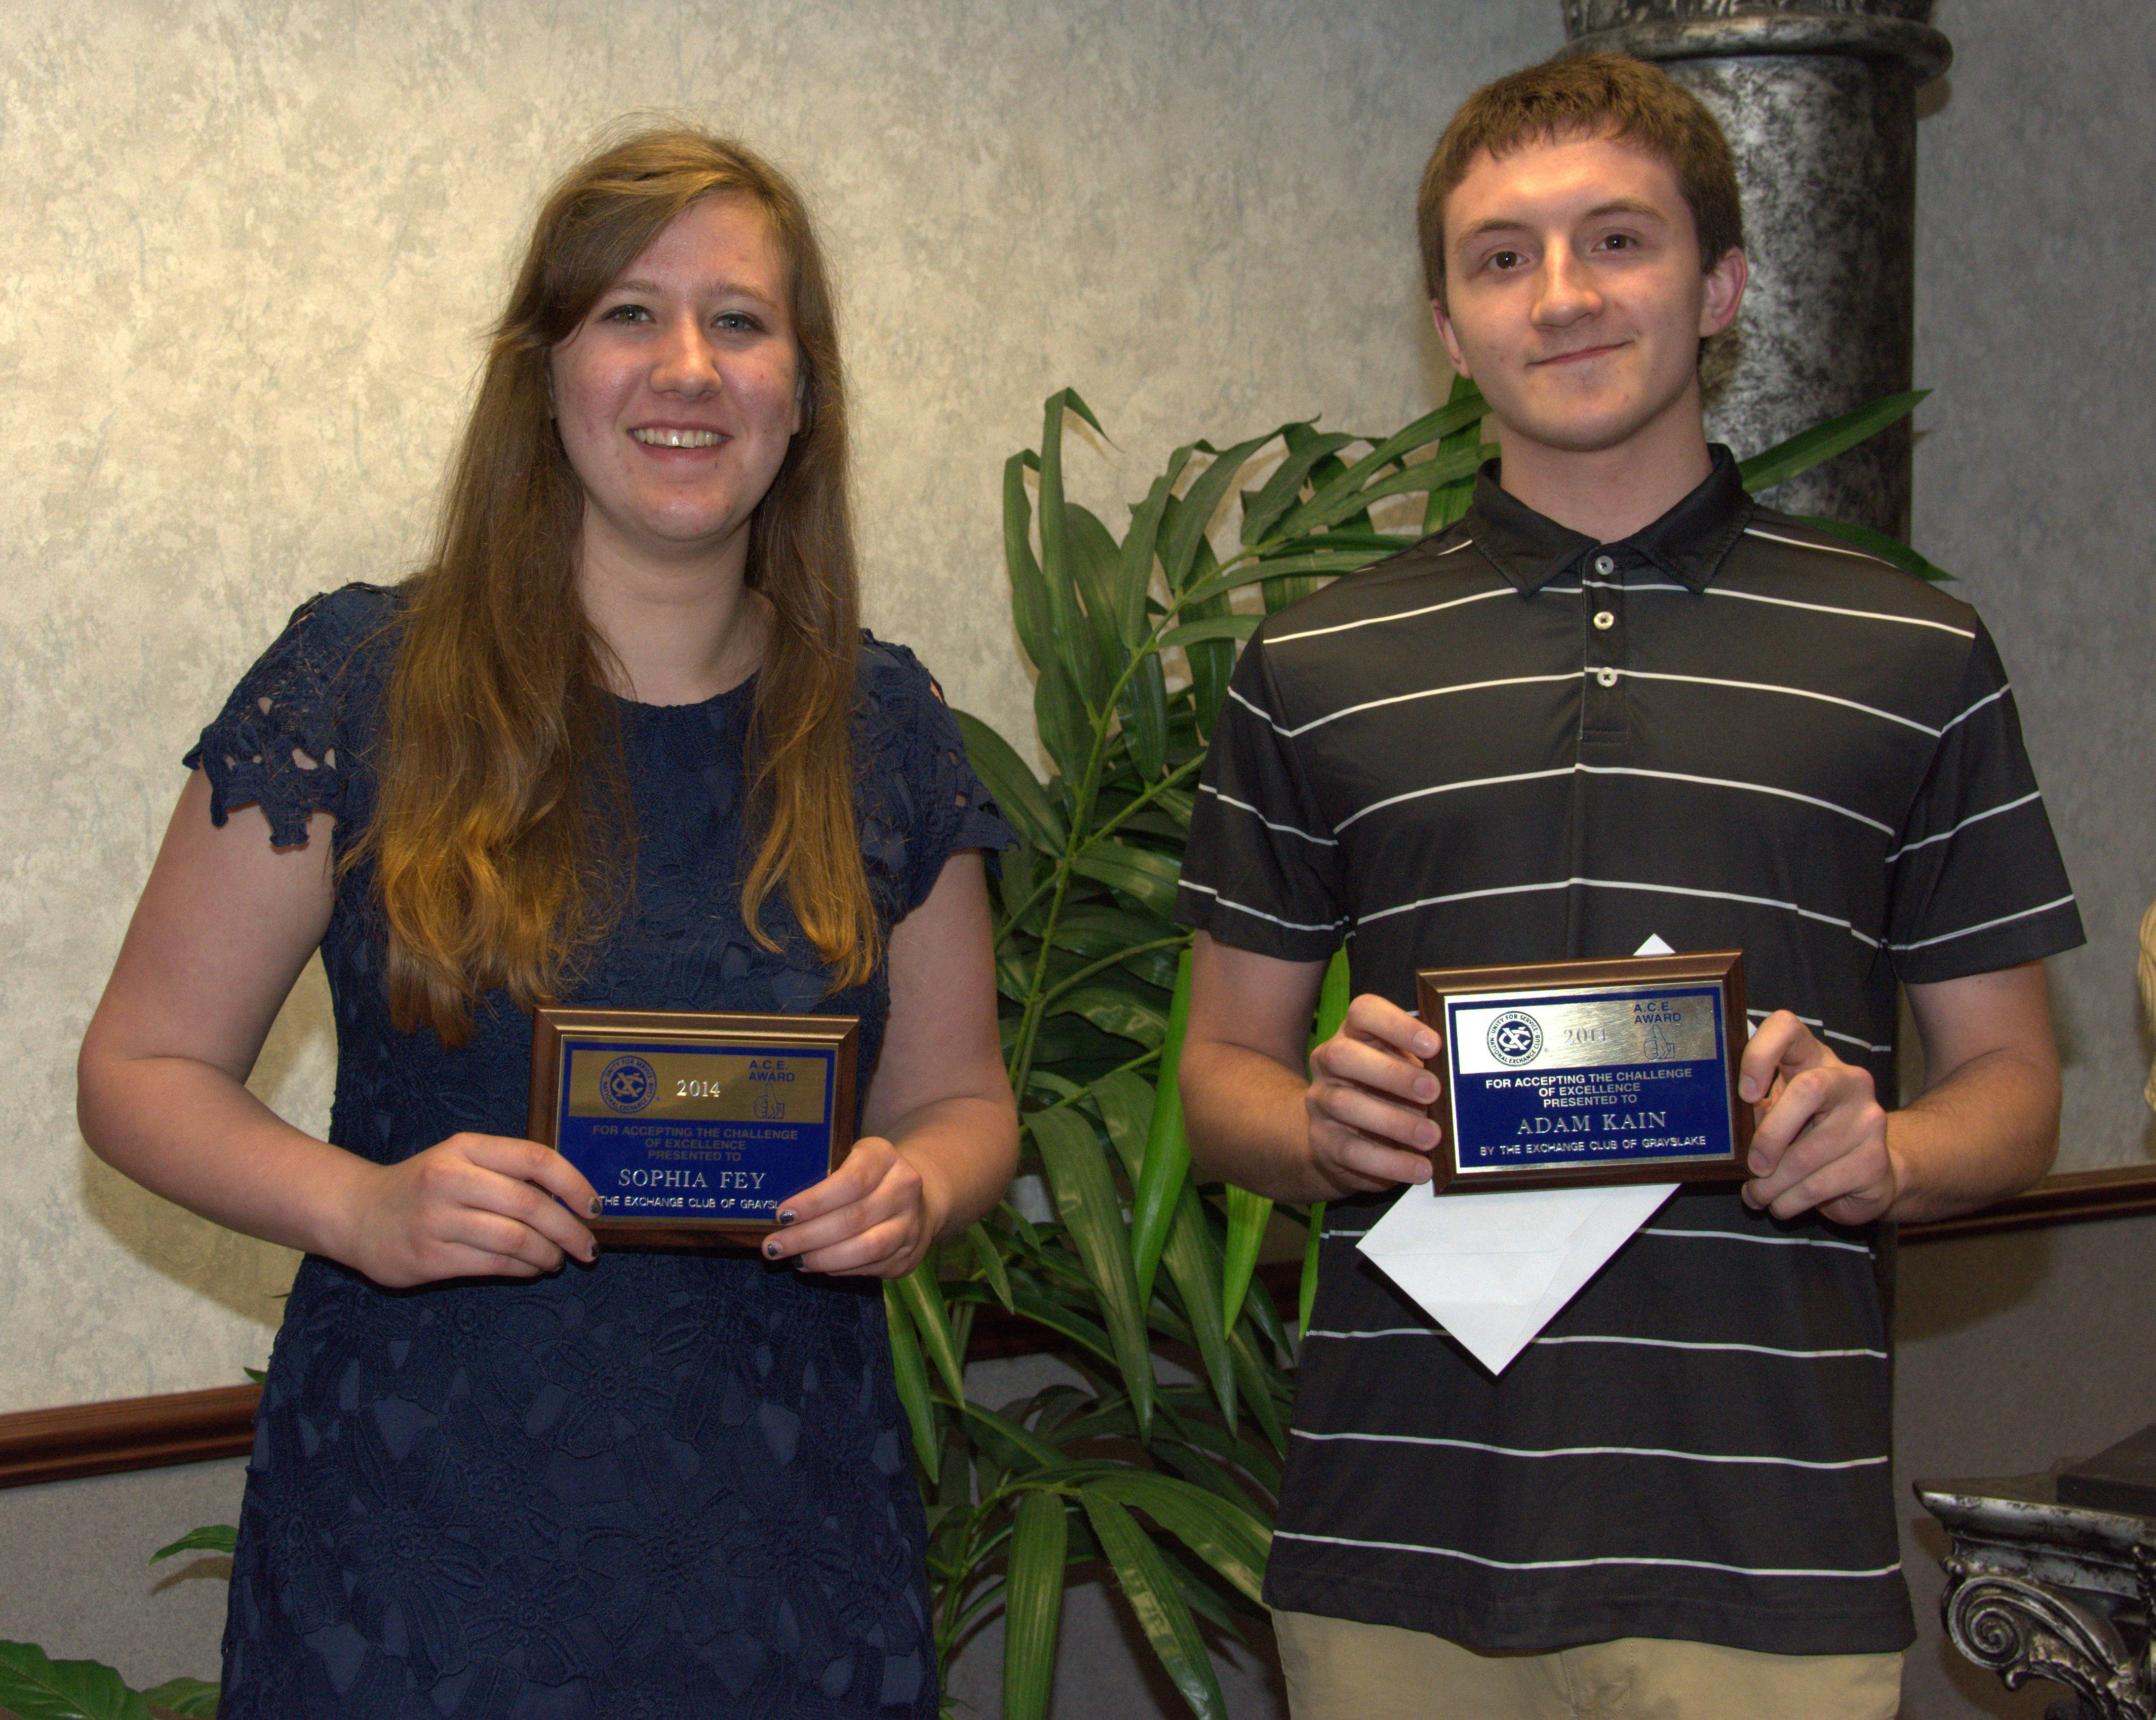 Sofia Fey and Adam Kain with their ACE Awards, earned by overcoming obstacles to pursue their high school careers.